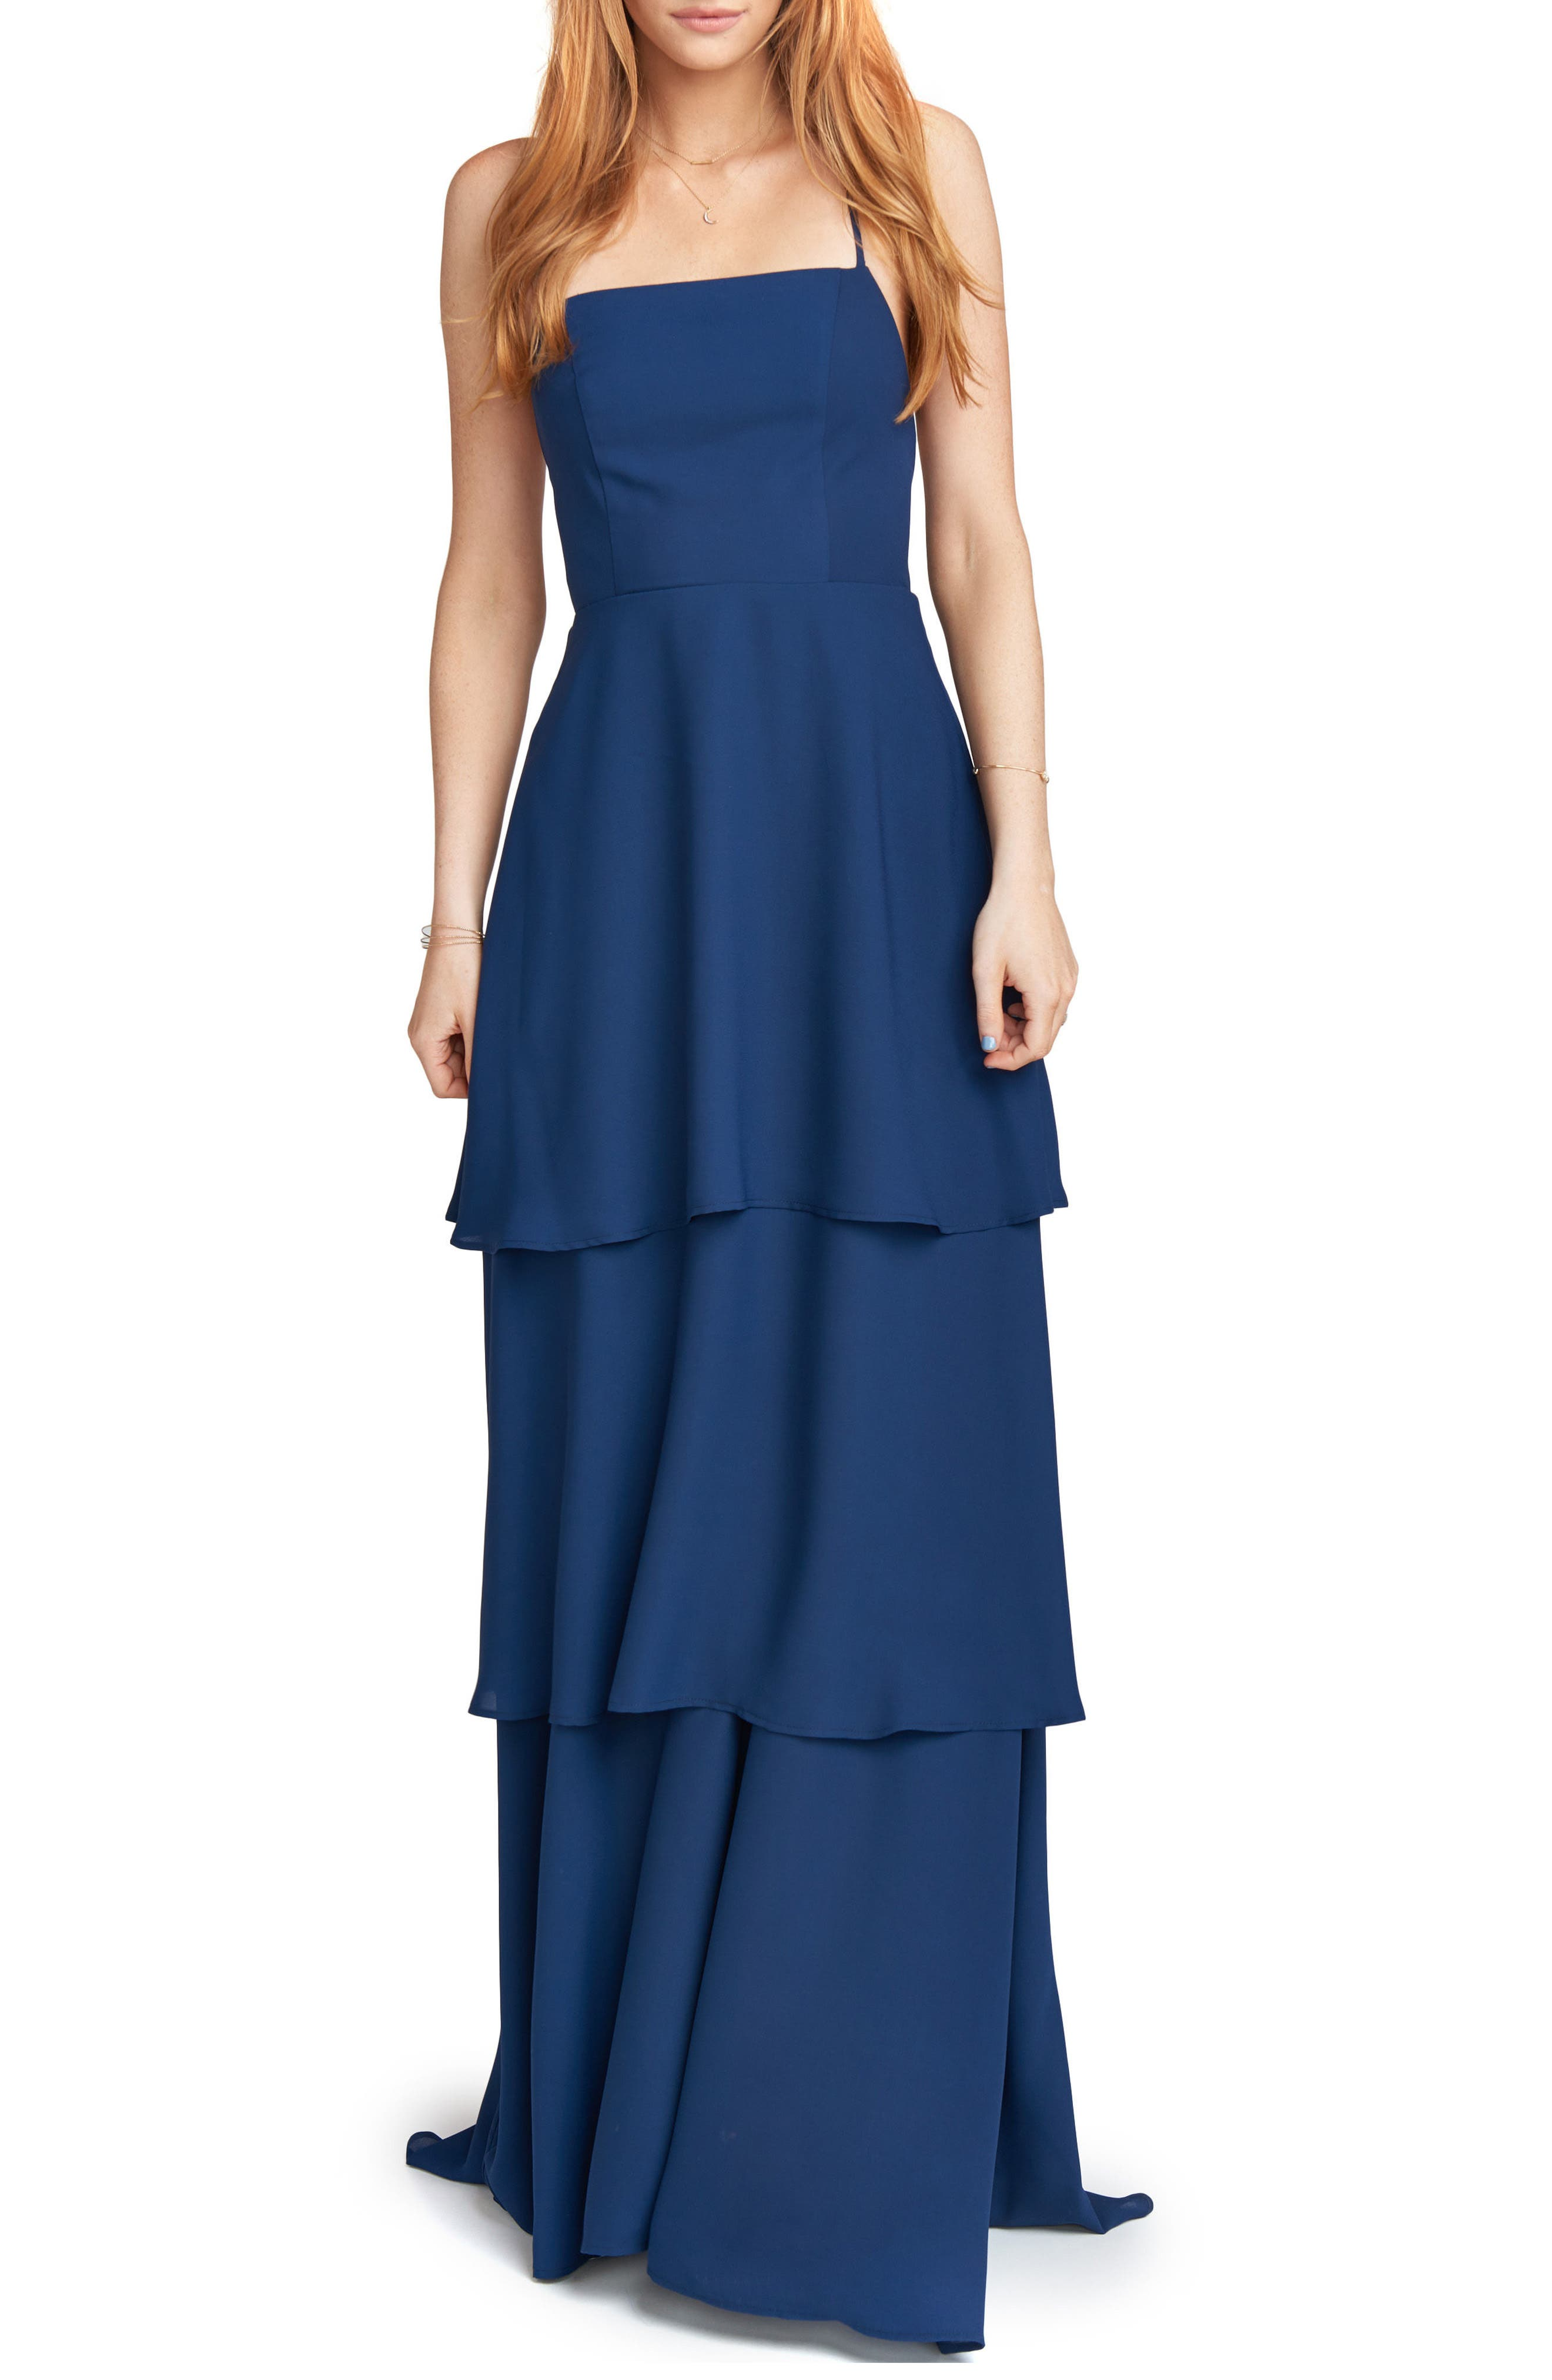 Calypso Strappy Tiered Maxi Dress,                             Main thumbnail 1, color,                             Rich Navy